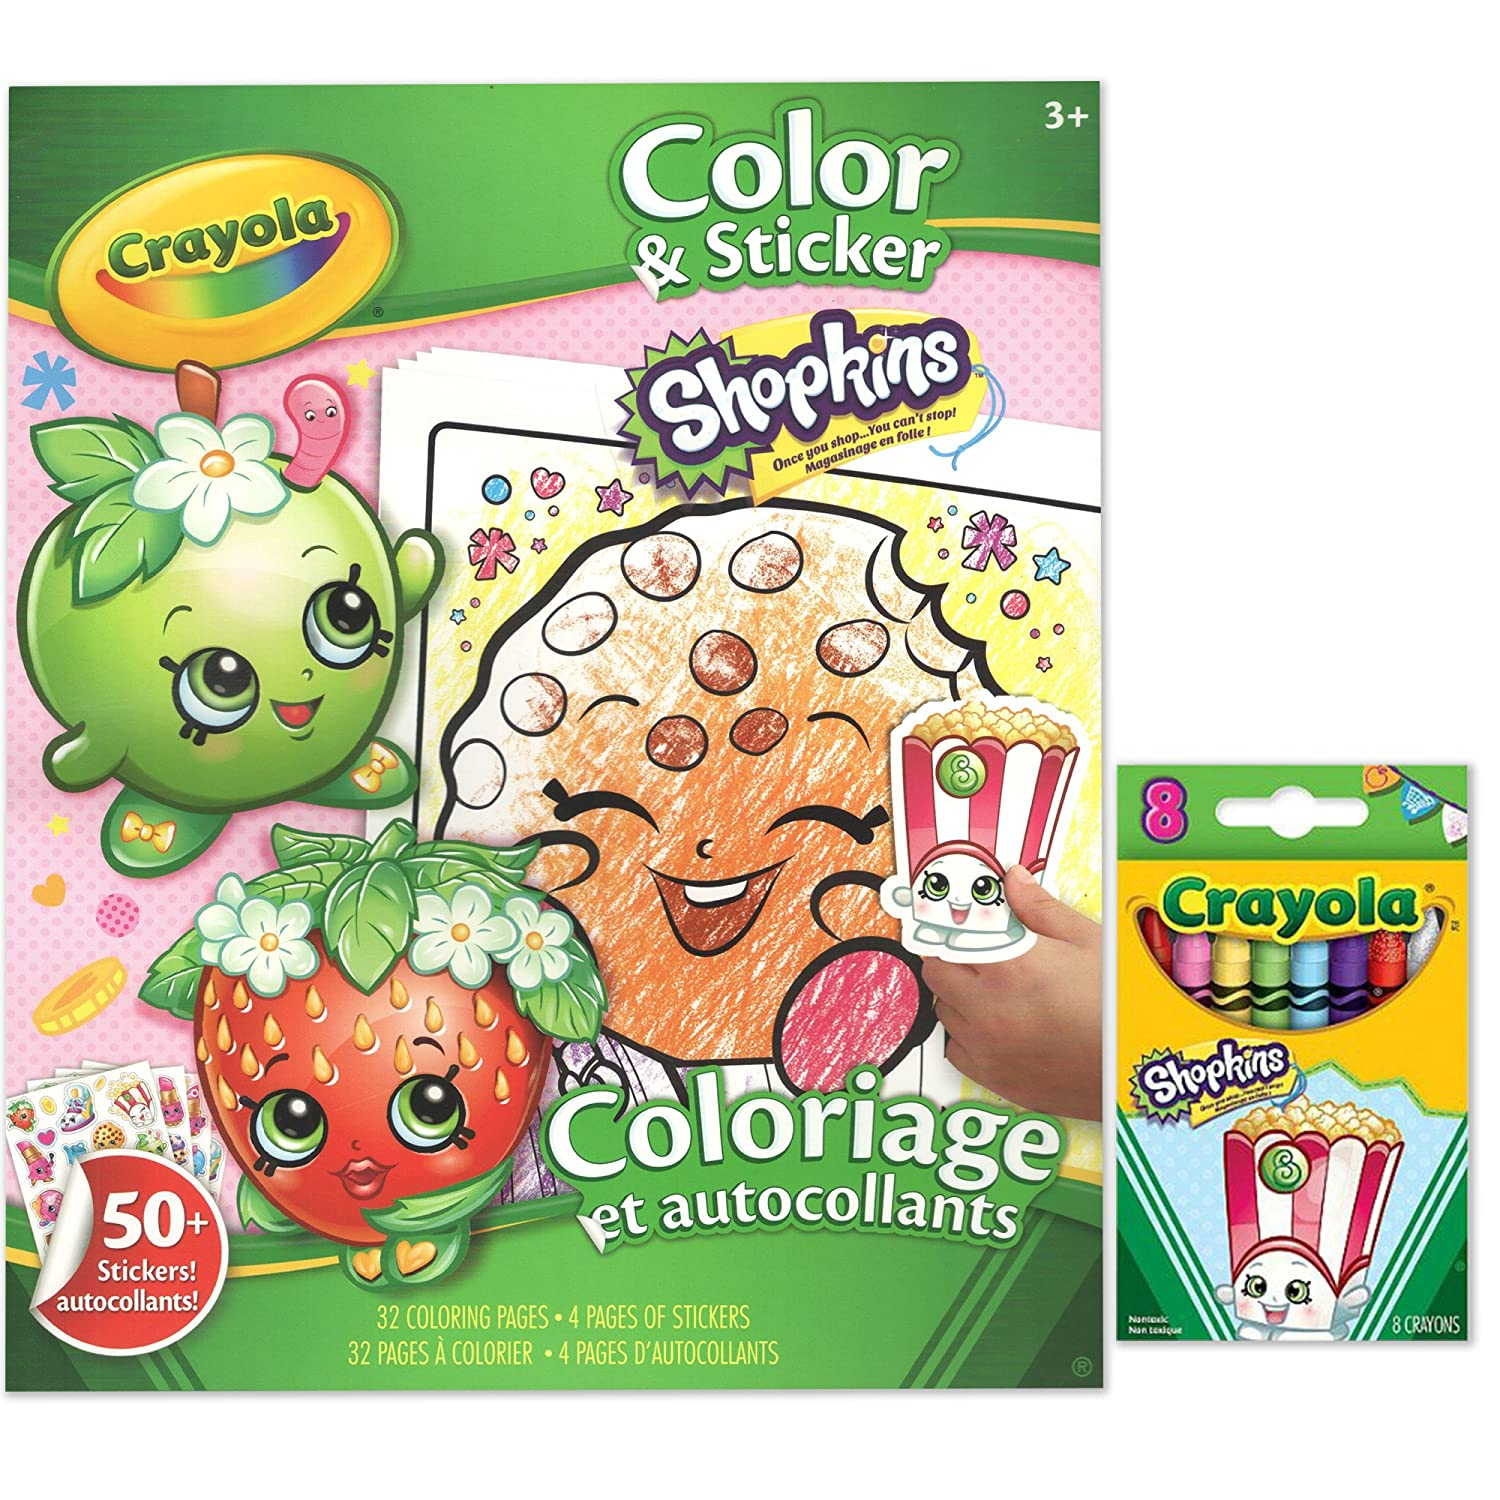 Shopkins 50 Stickers, 32 Coloring Pages and 8 Poppy Corn Crayola ...